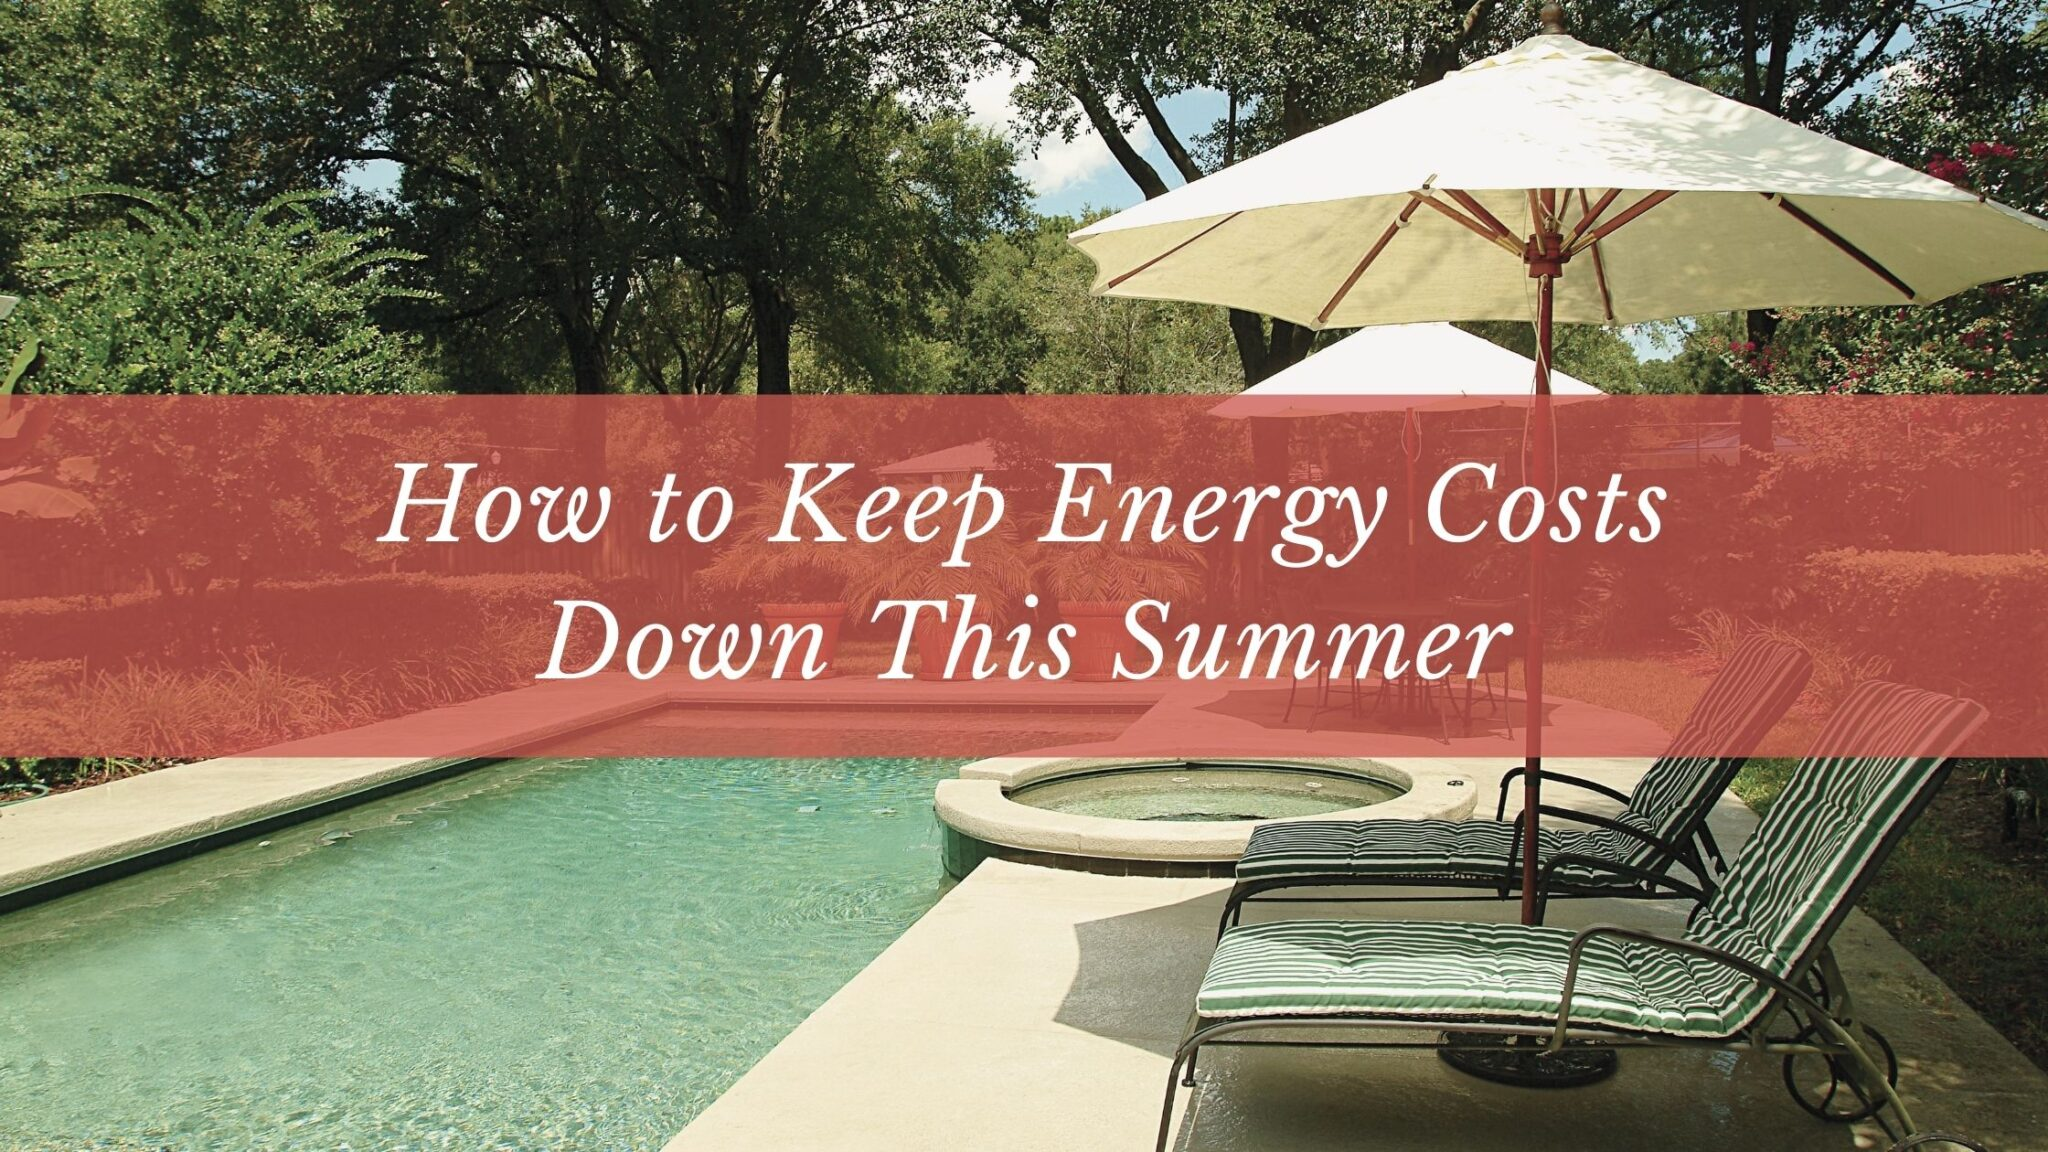 How to Keep Energy Costs Down This Summer